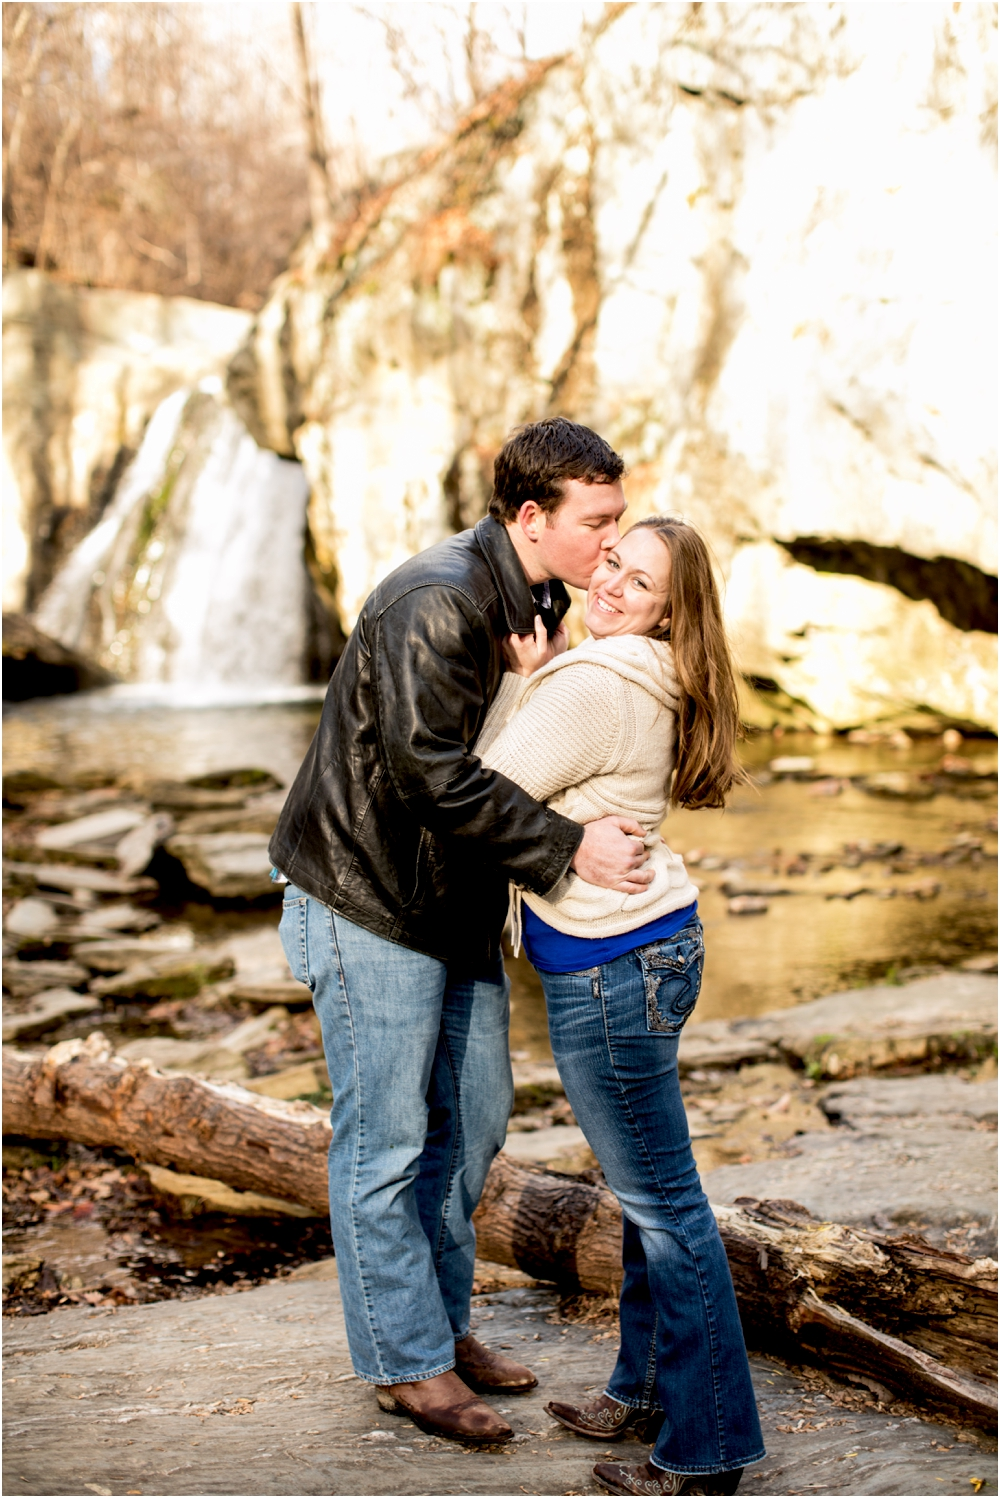 bridget jeff woods engagement session living radiant photography photos_0028.jpg